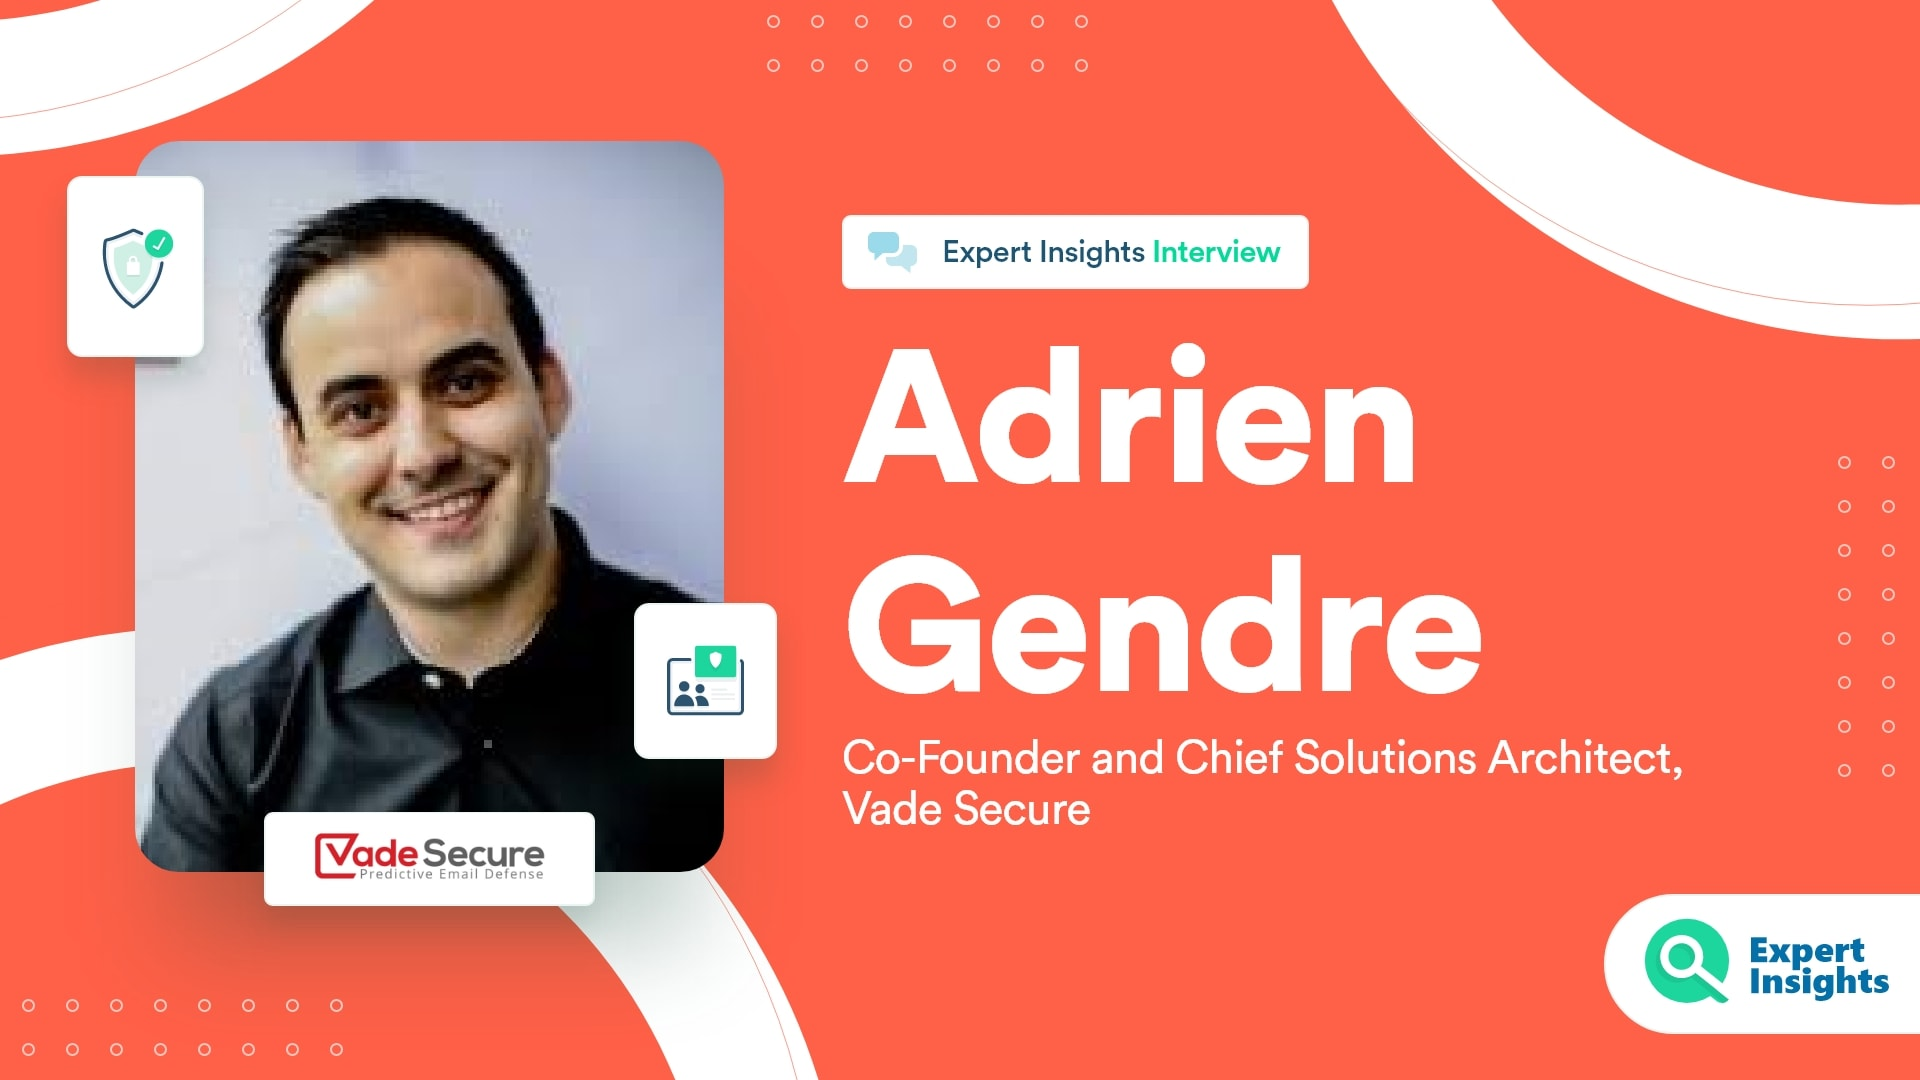 Expert Insights Interview With Adrien Gendre Of Vade Secure